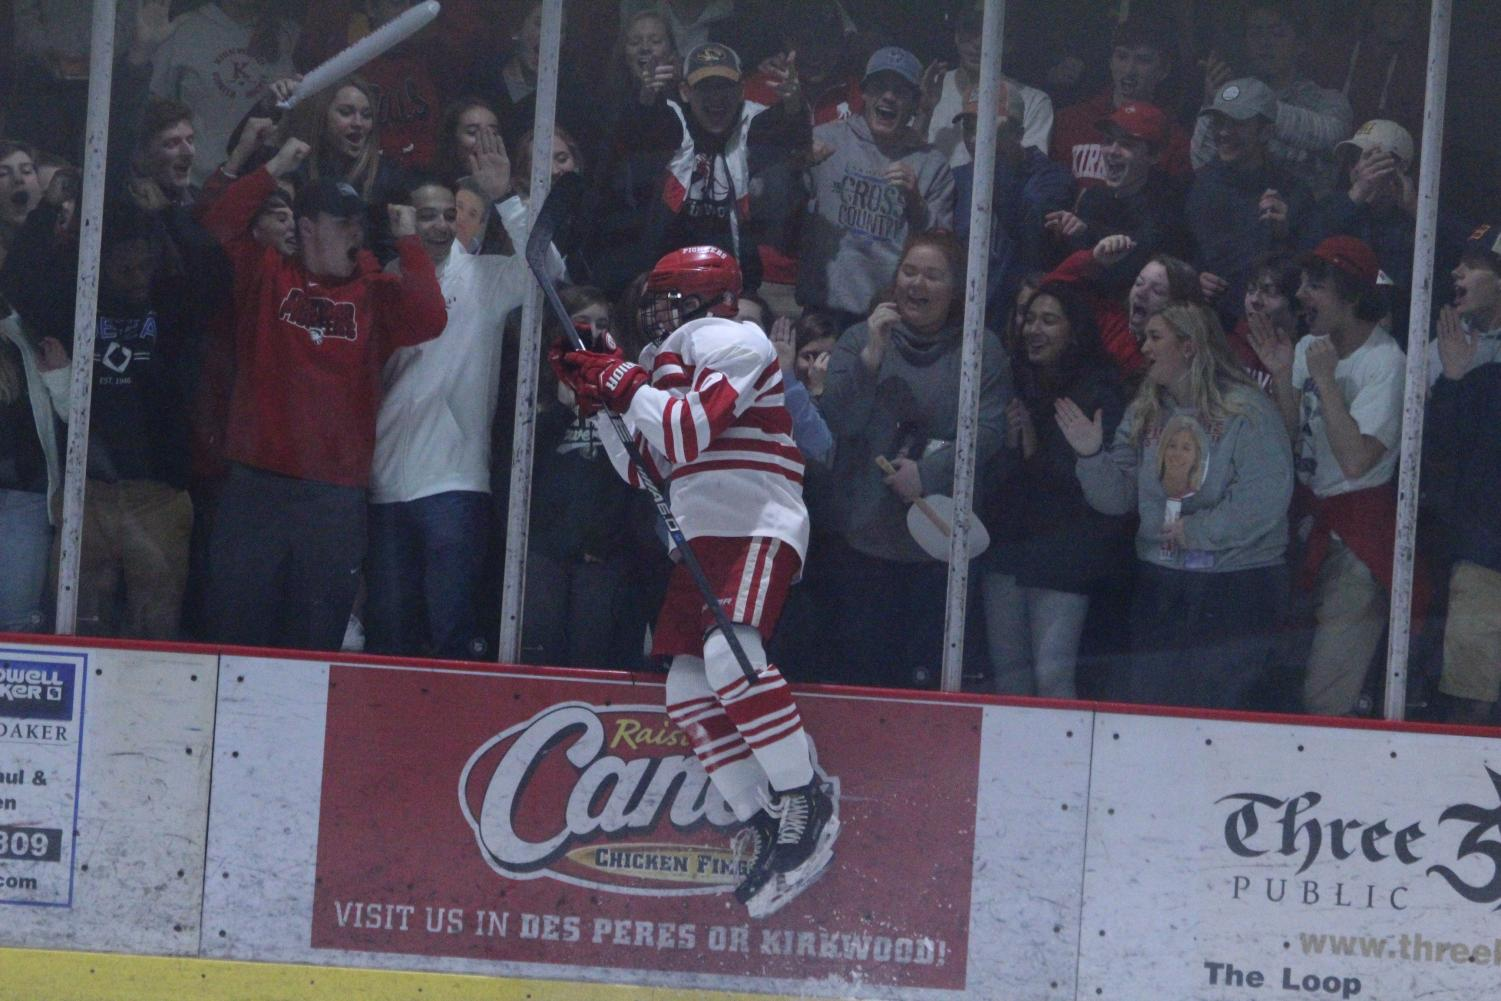 Seamus+Campbell%2C+junior%2C+celebrates+his+goal+by+jumping+into+the+glass+on+senior+night+against+Vianney+High+School+Jan.+15.+